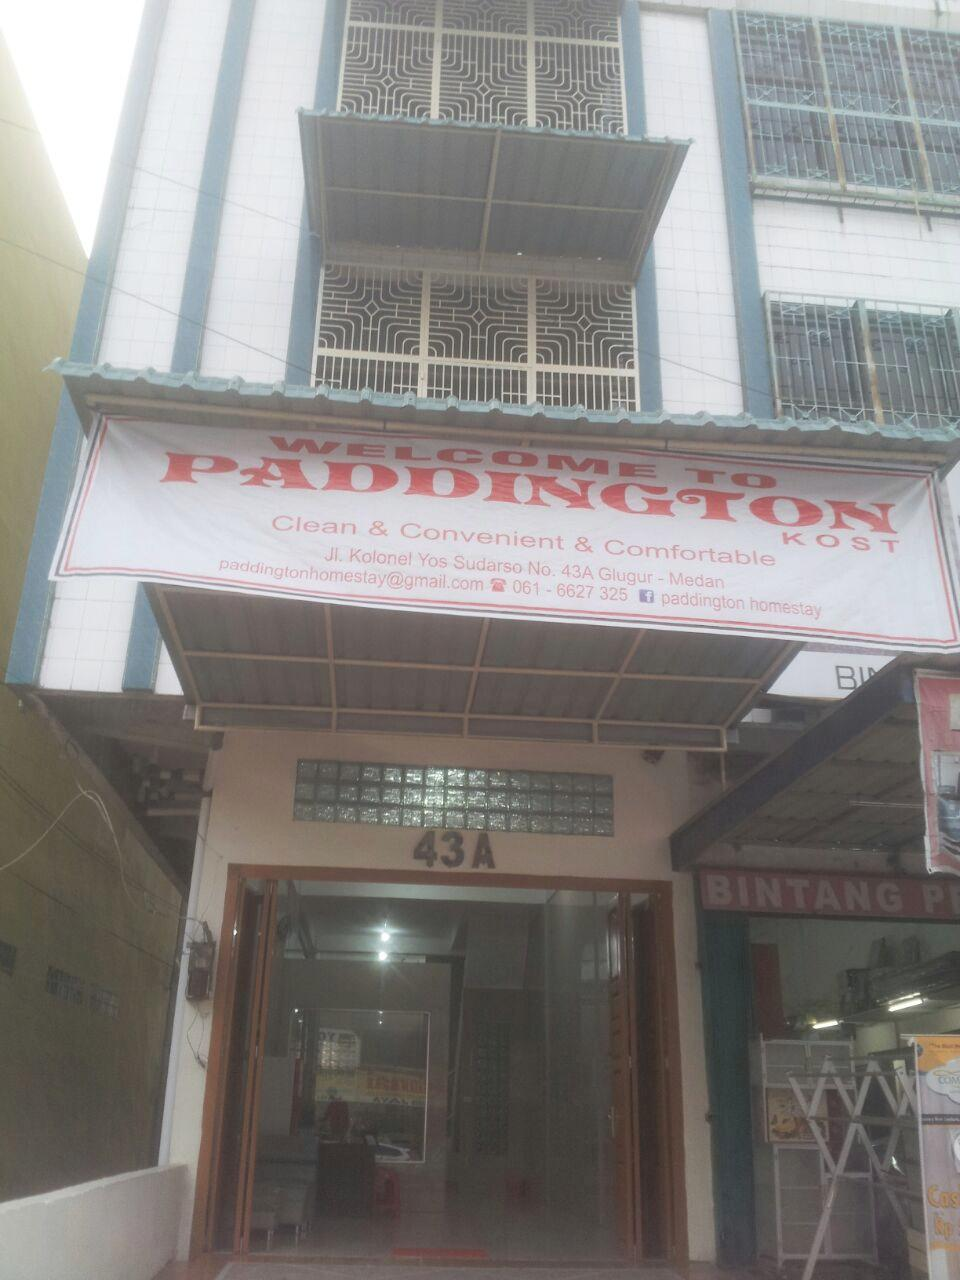 Paddington Homestay, Medan